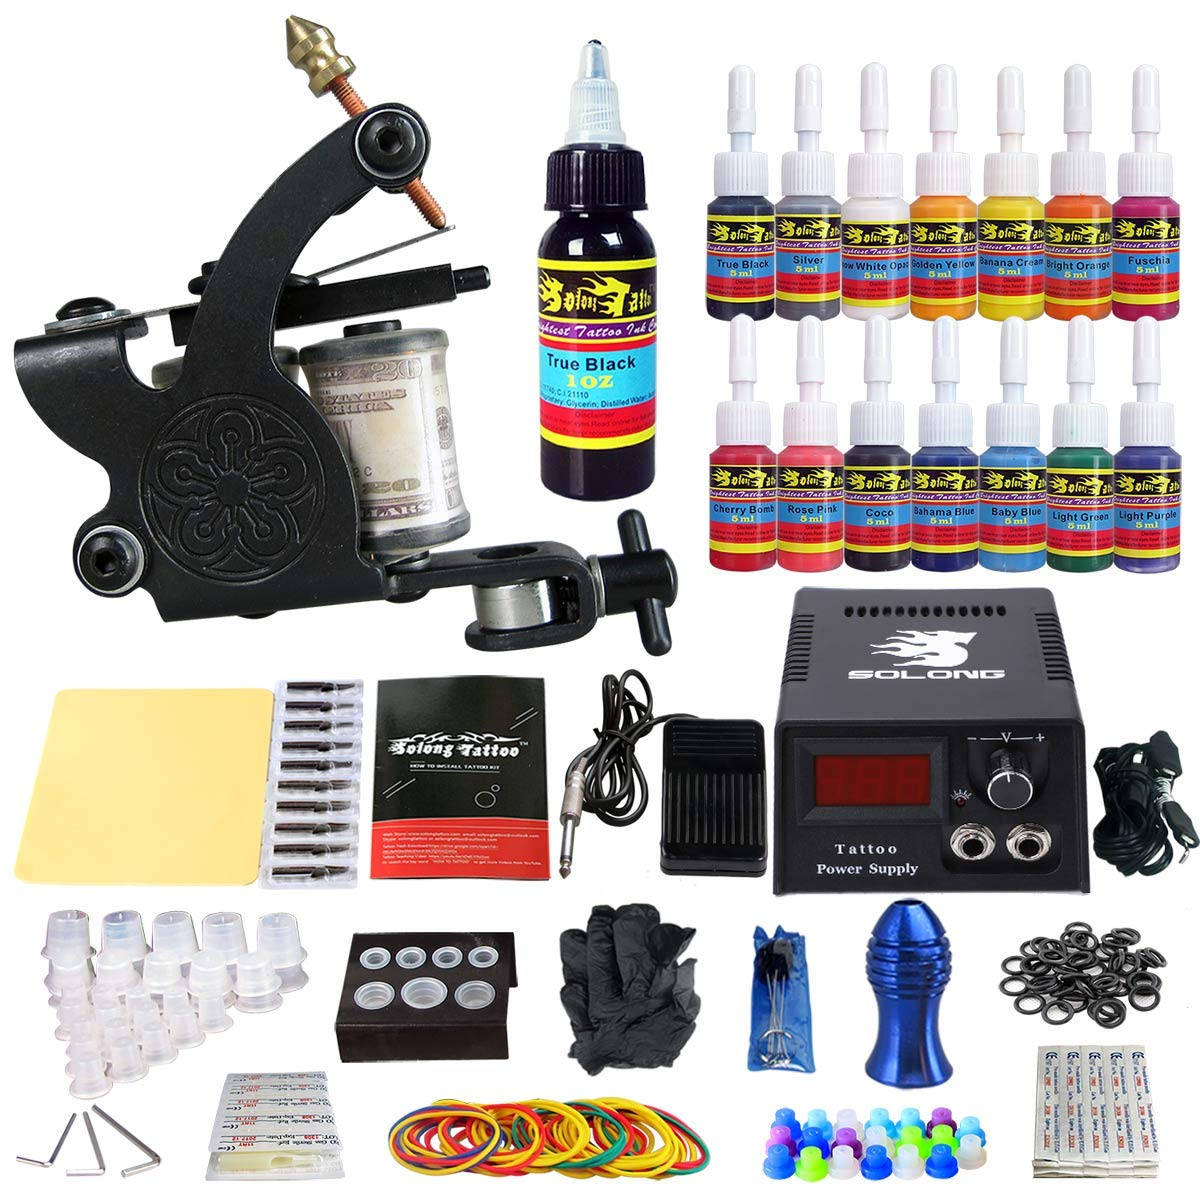 Solong Tattoo Complete Starter Tattoo Kit 1 Pro Machine Guns 14 Inks Power Supply Foot Pedal Needles Grips Tips TK102 by Solong Tattoo